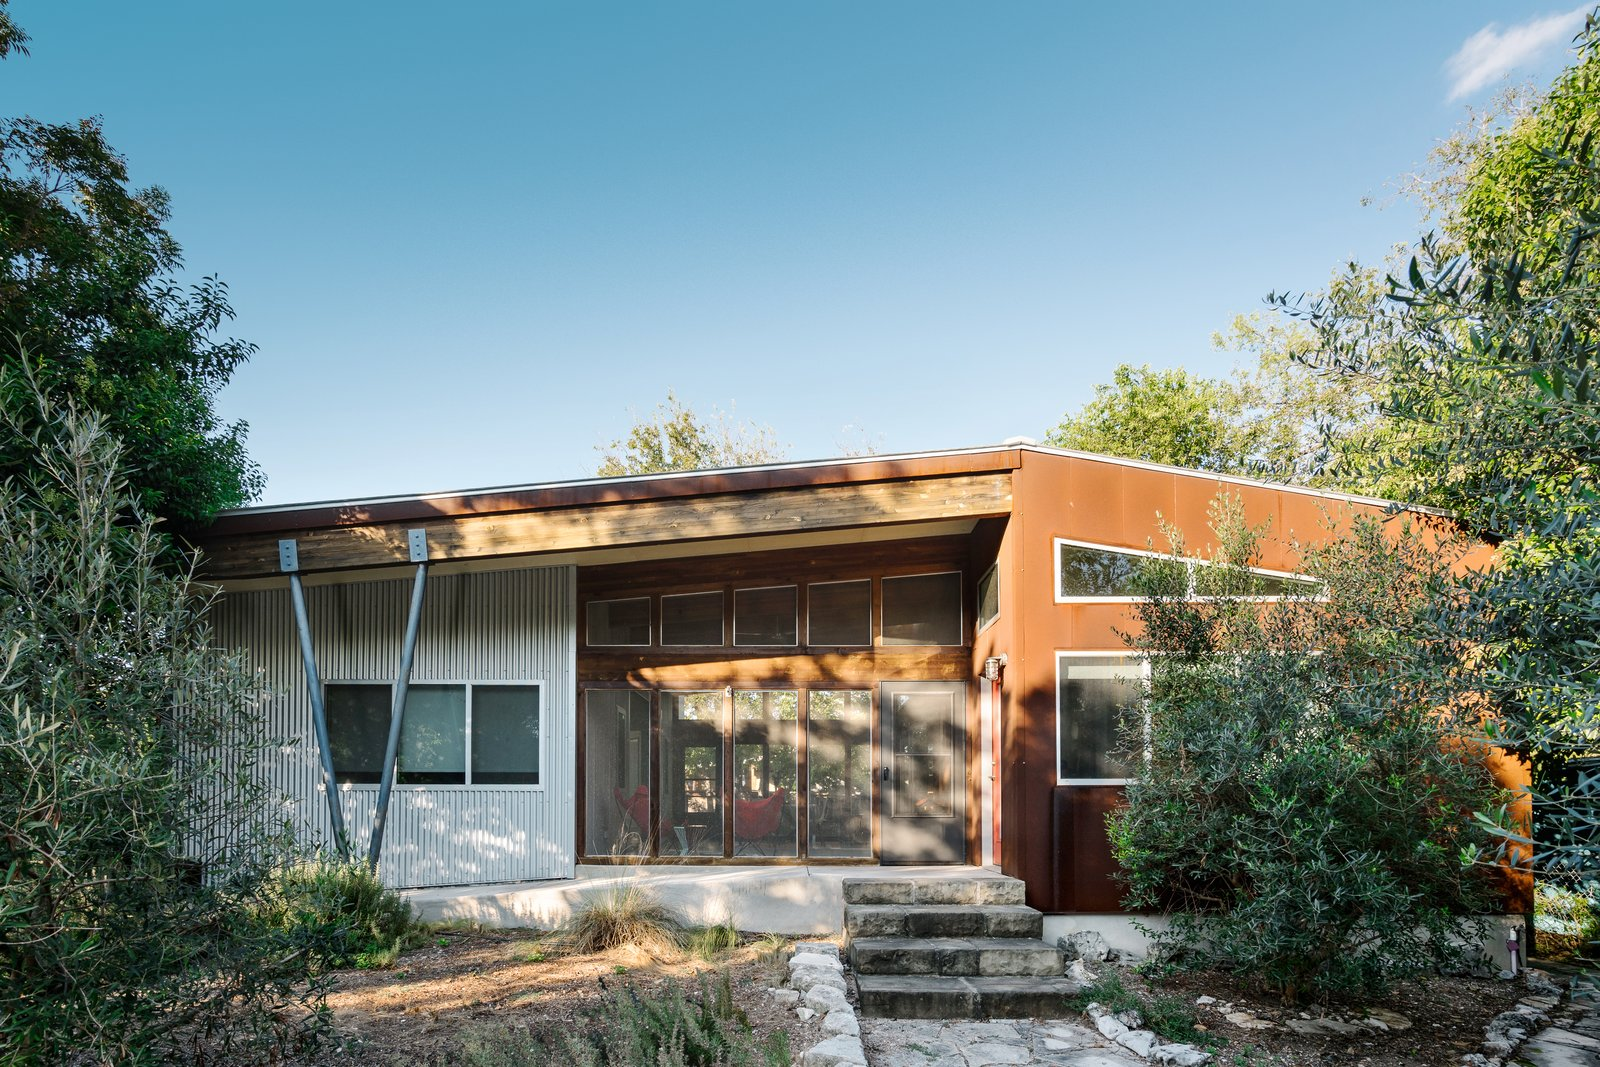 Articles about 5 unique houses austin texas on Dwell.com